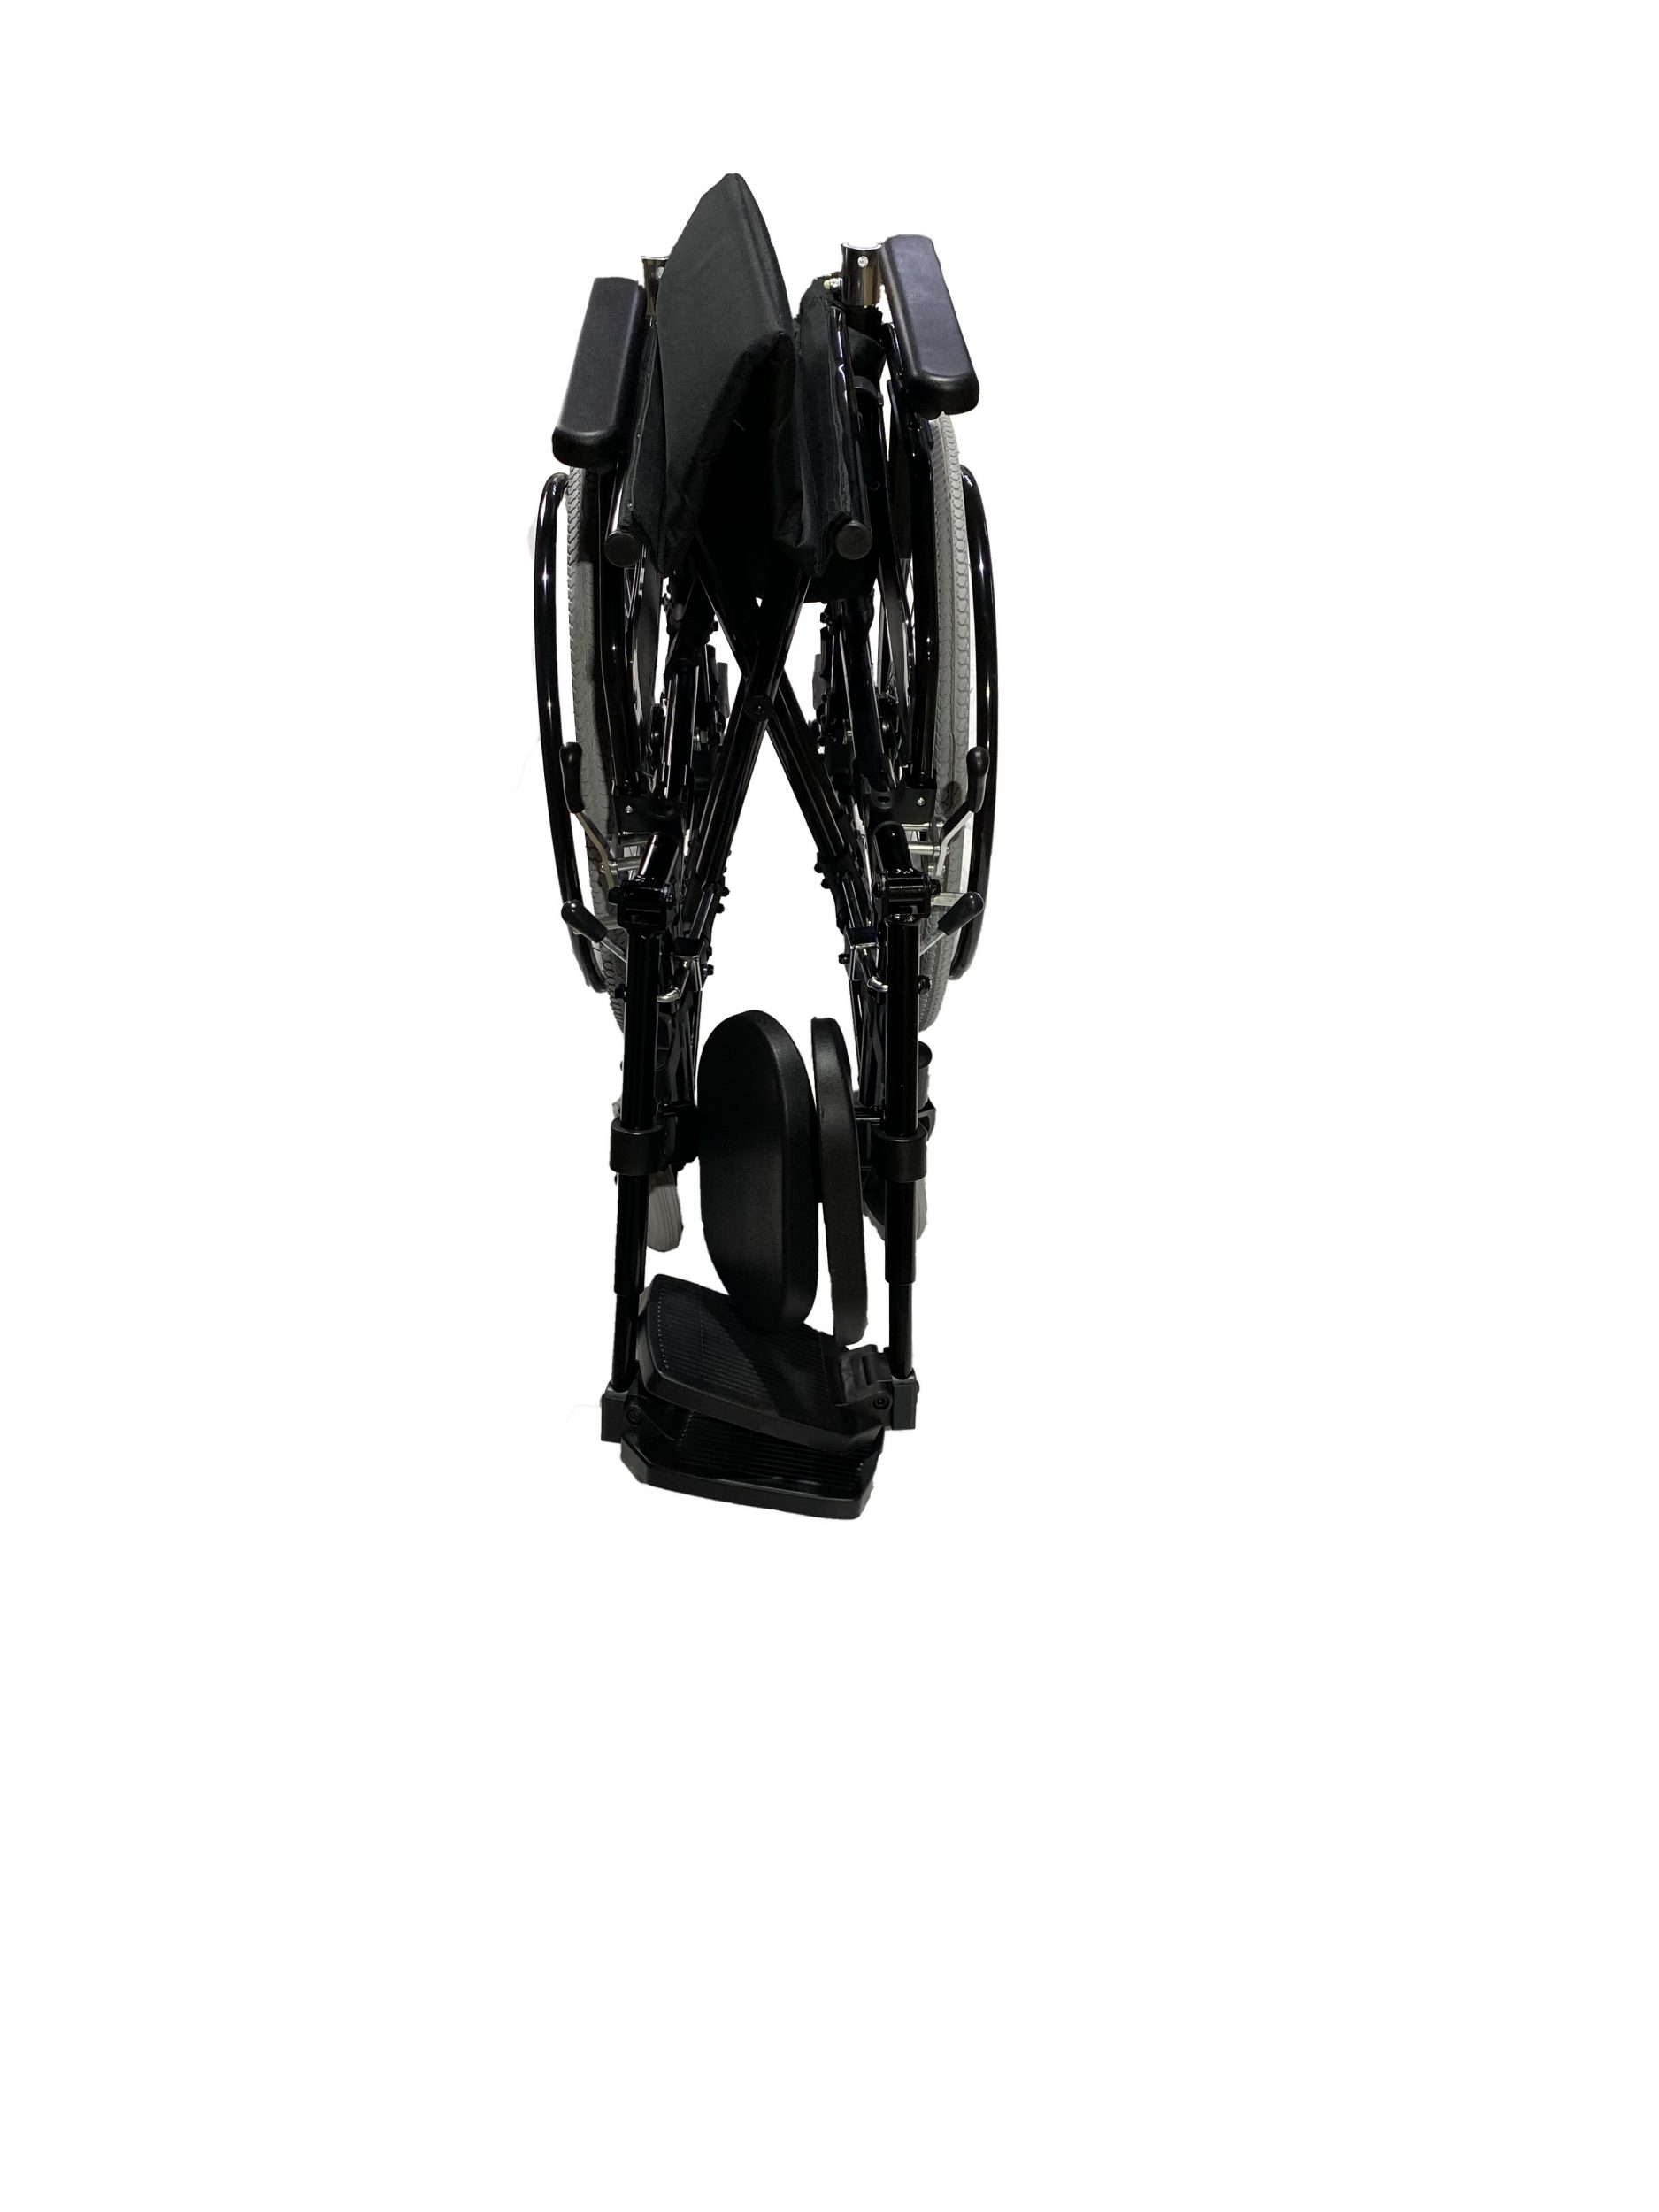 Compact and foldable manual wheelchair